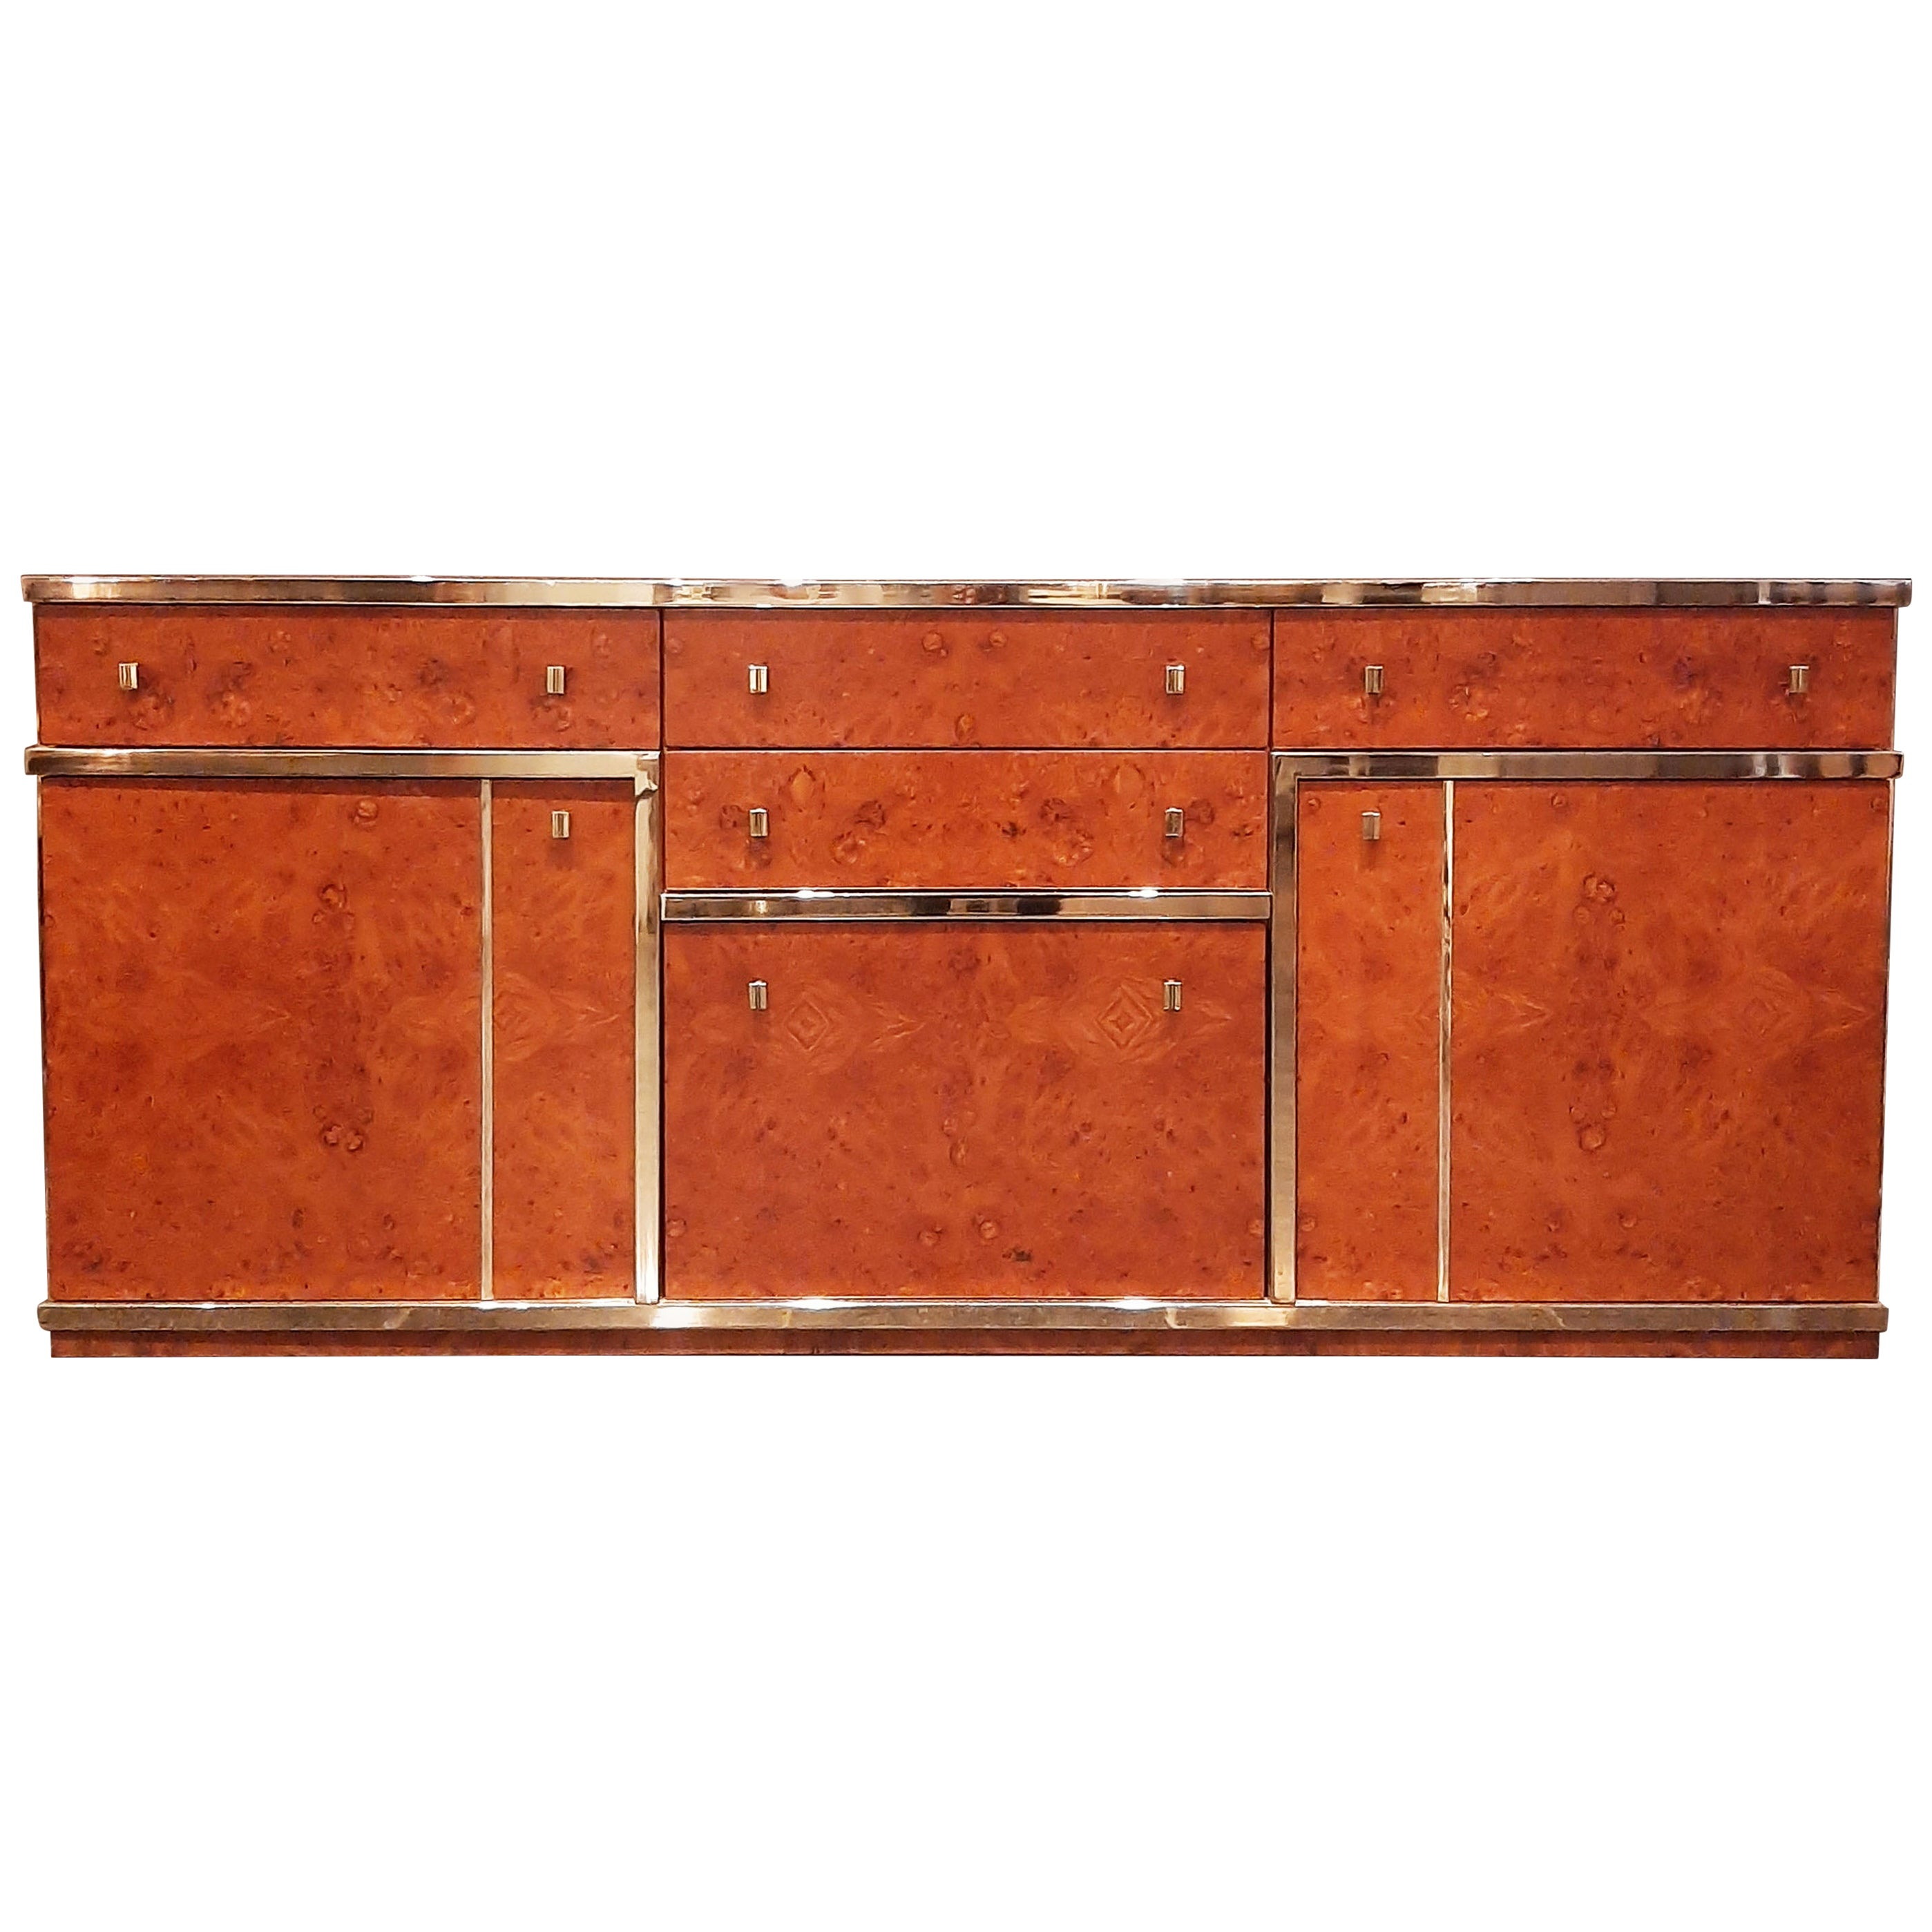 Midcentury Willy Rizzo Burl Wood and Chrome Credenza, Italy, 1970s